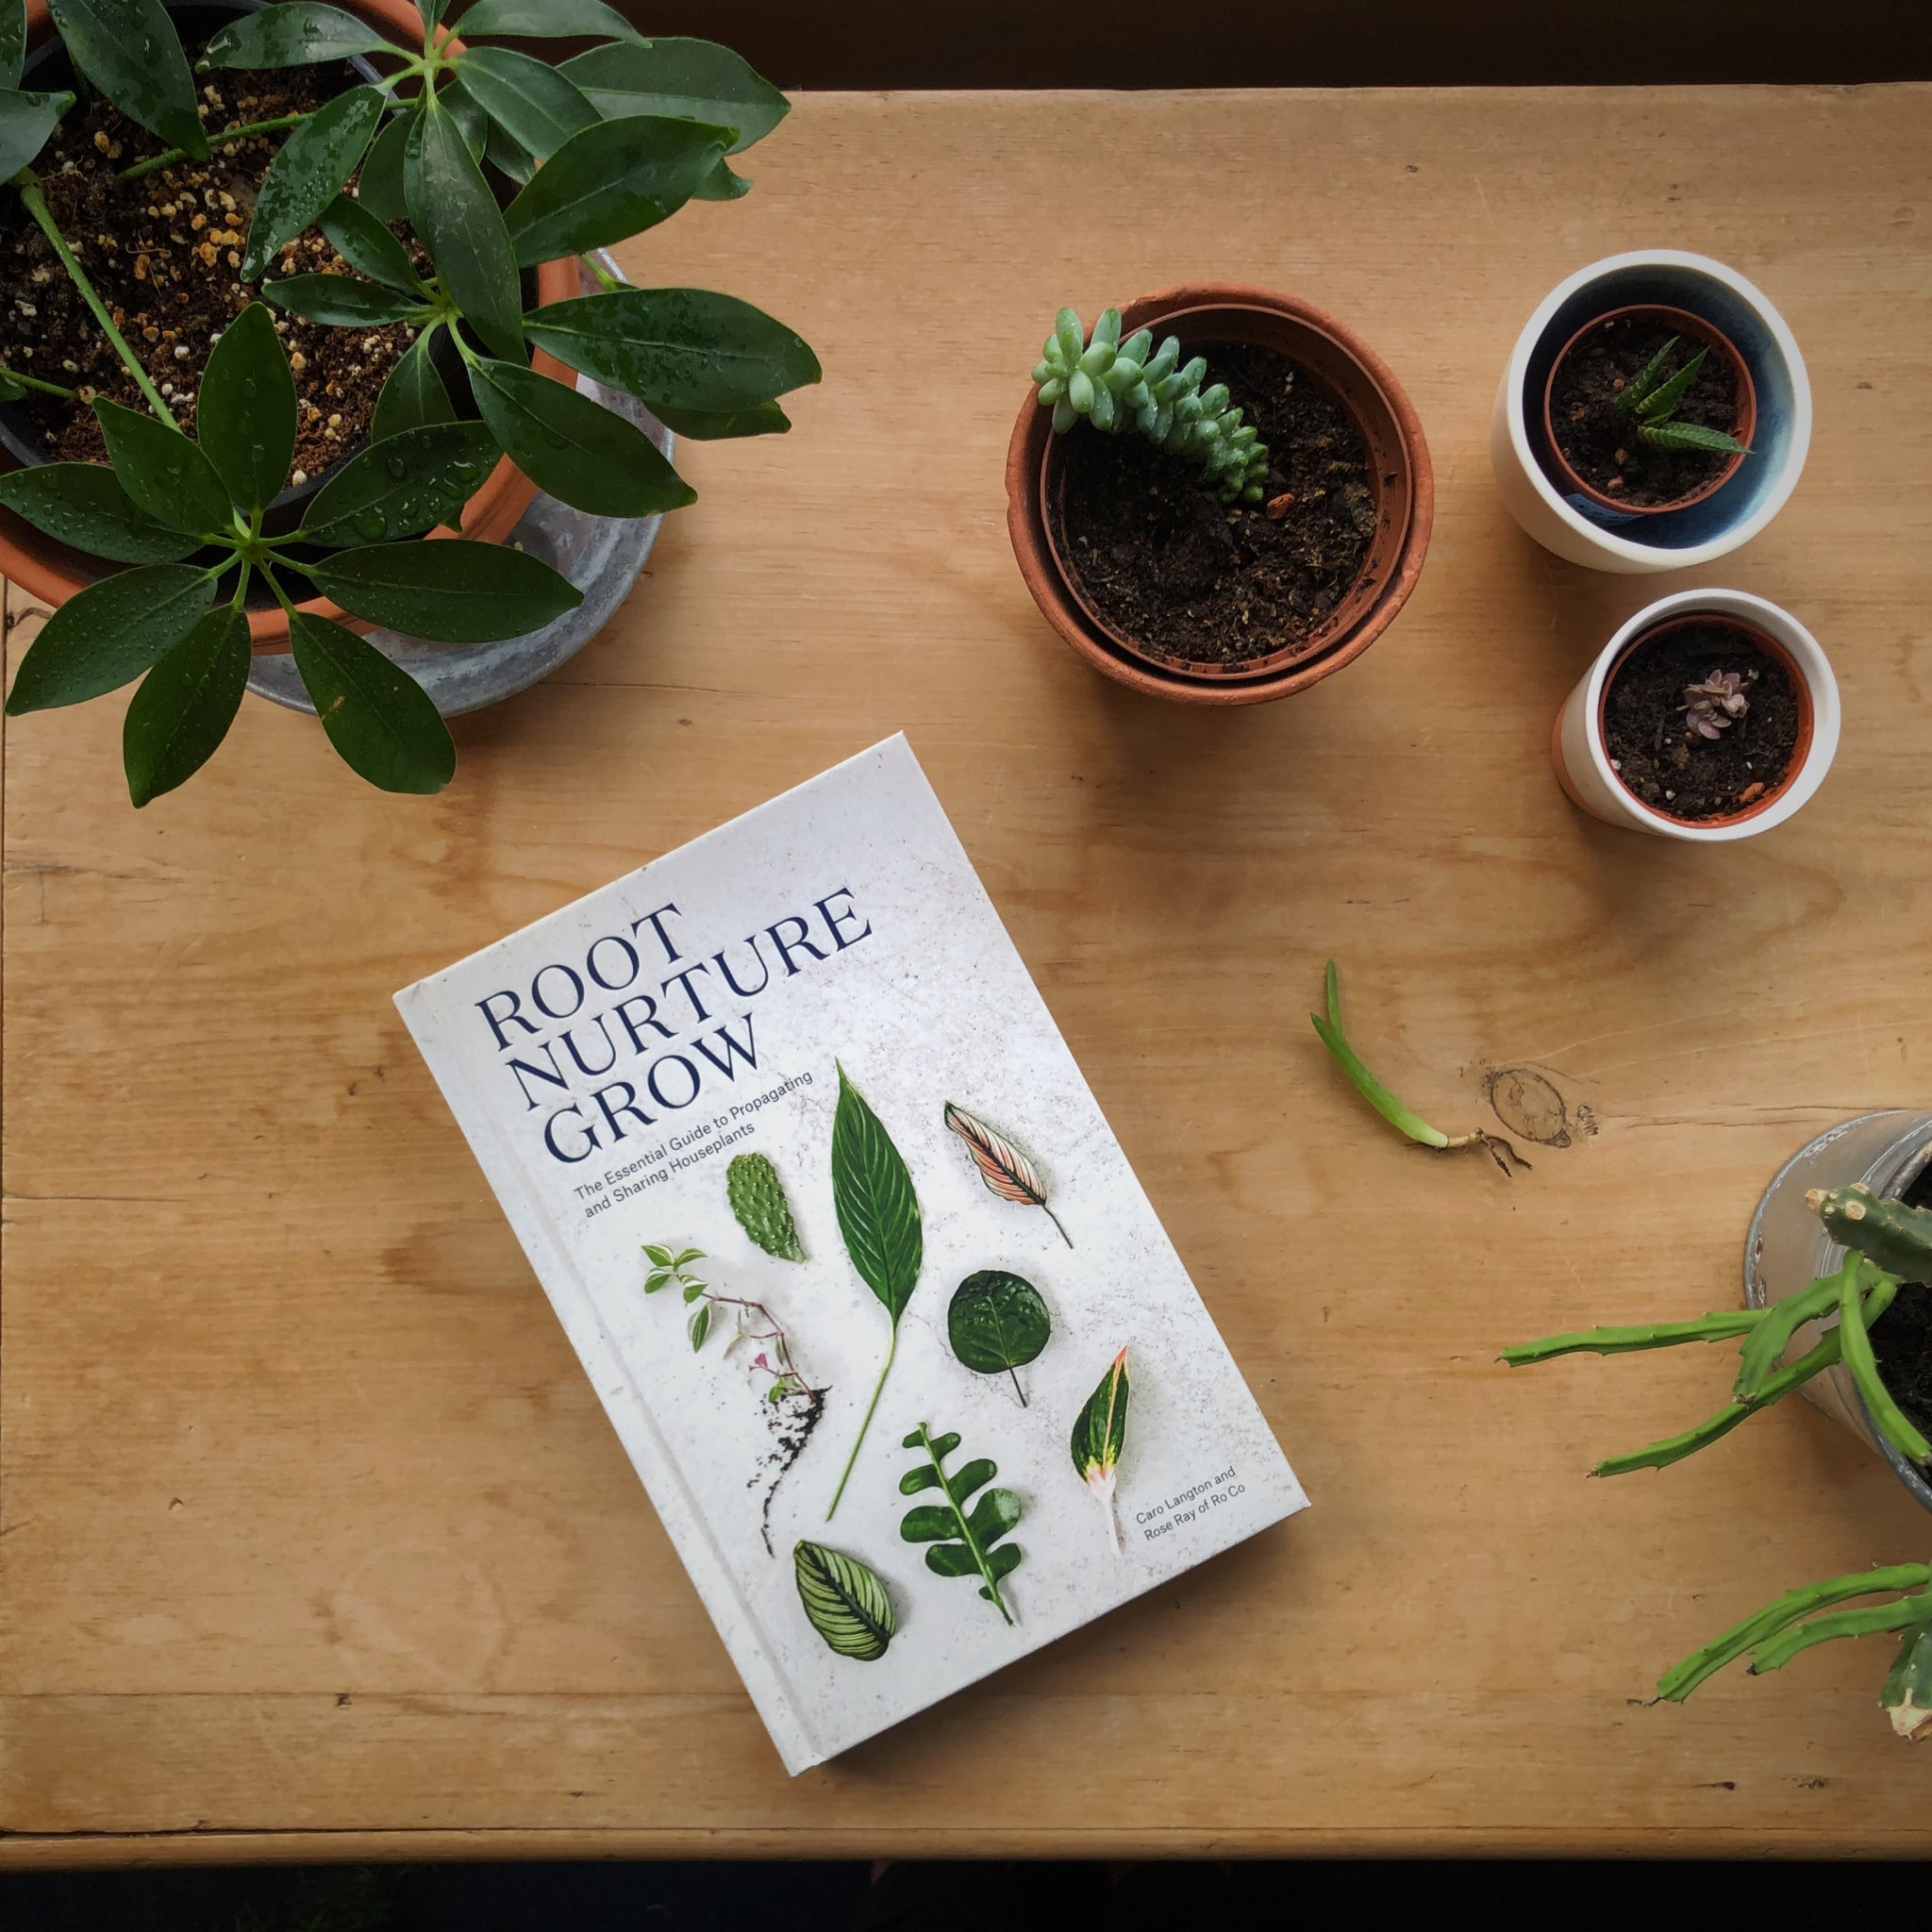 Image of a book called Root, Nurture, Grow on a table with some potting supplies and a potted plant next to it.